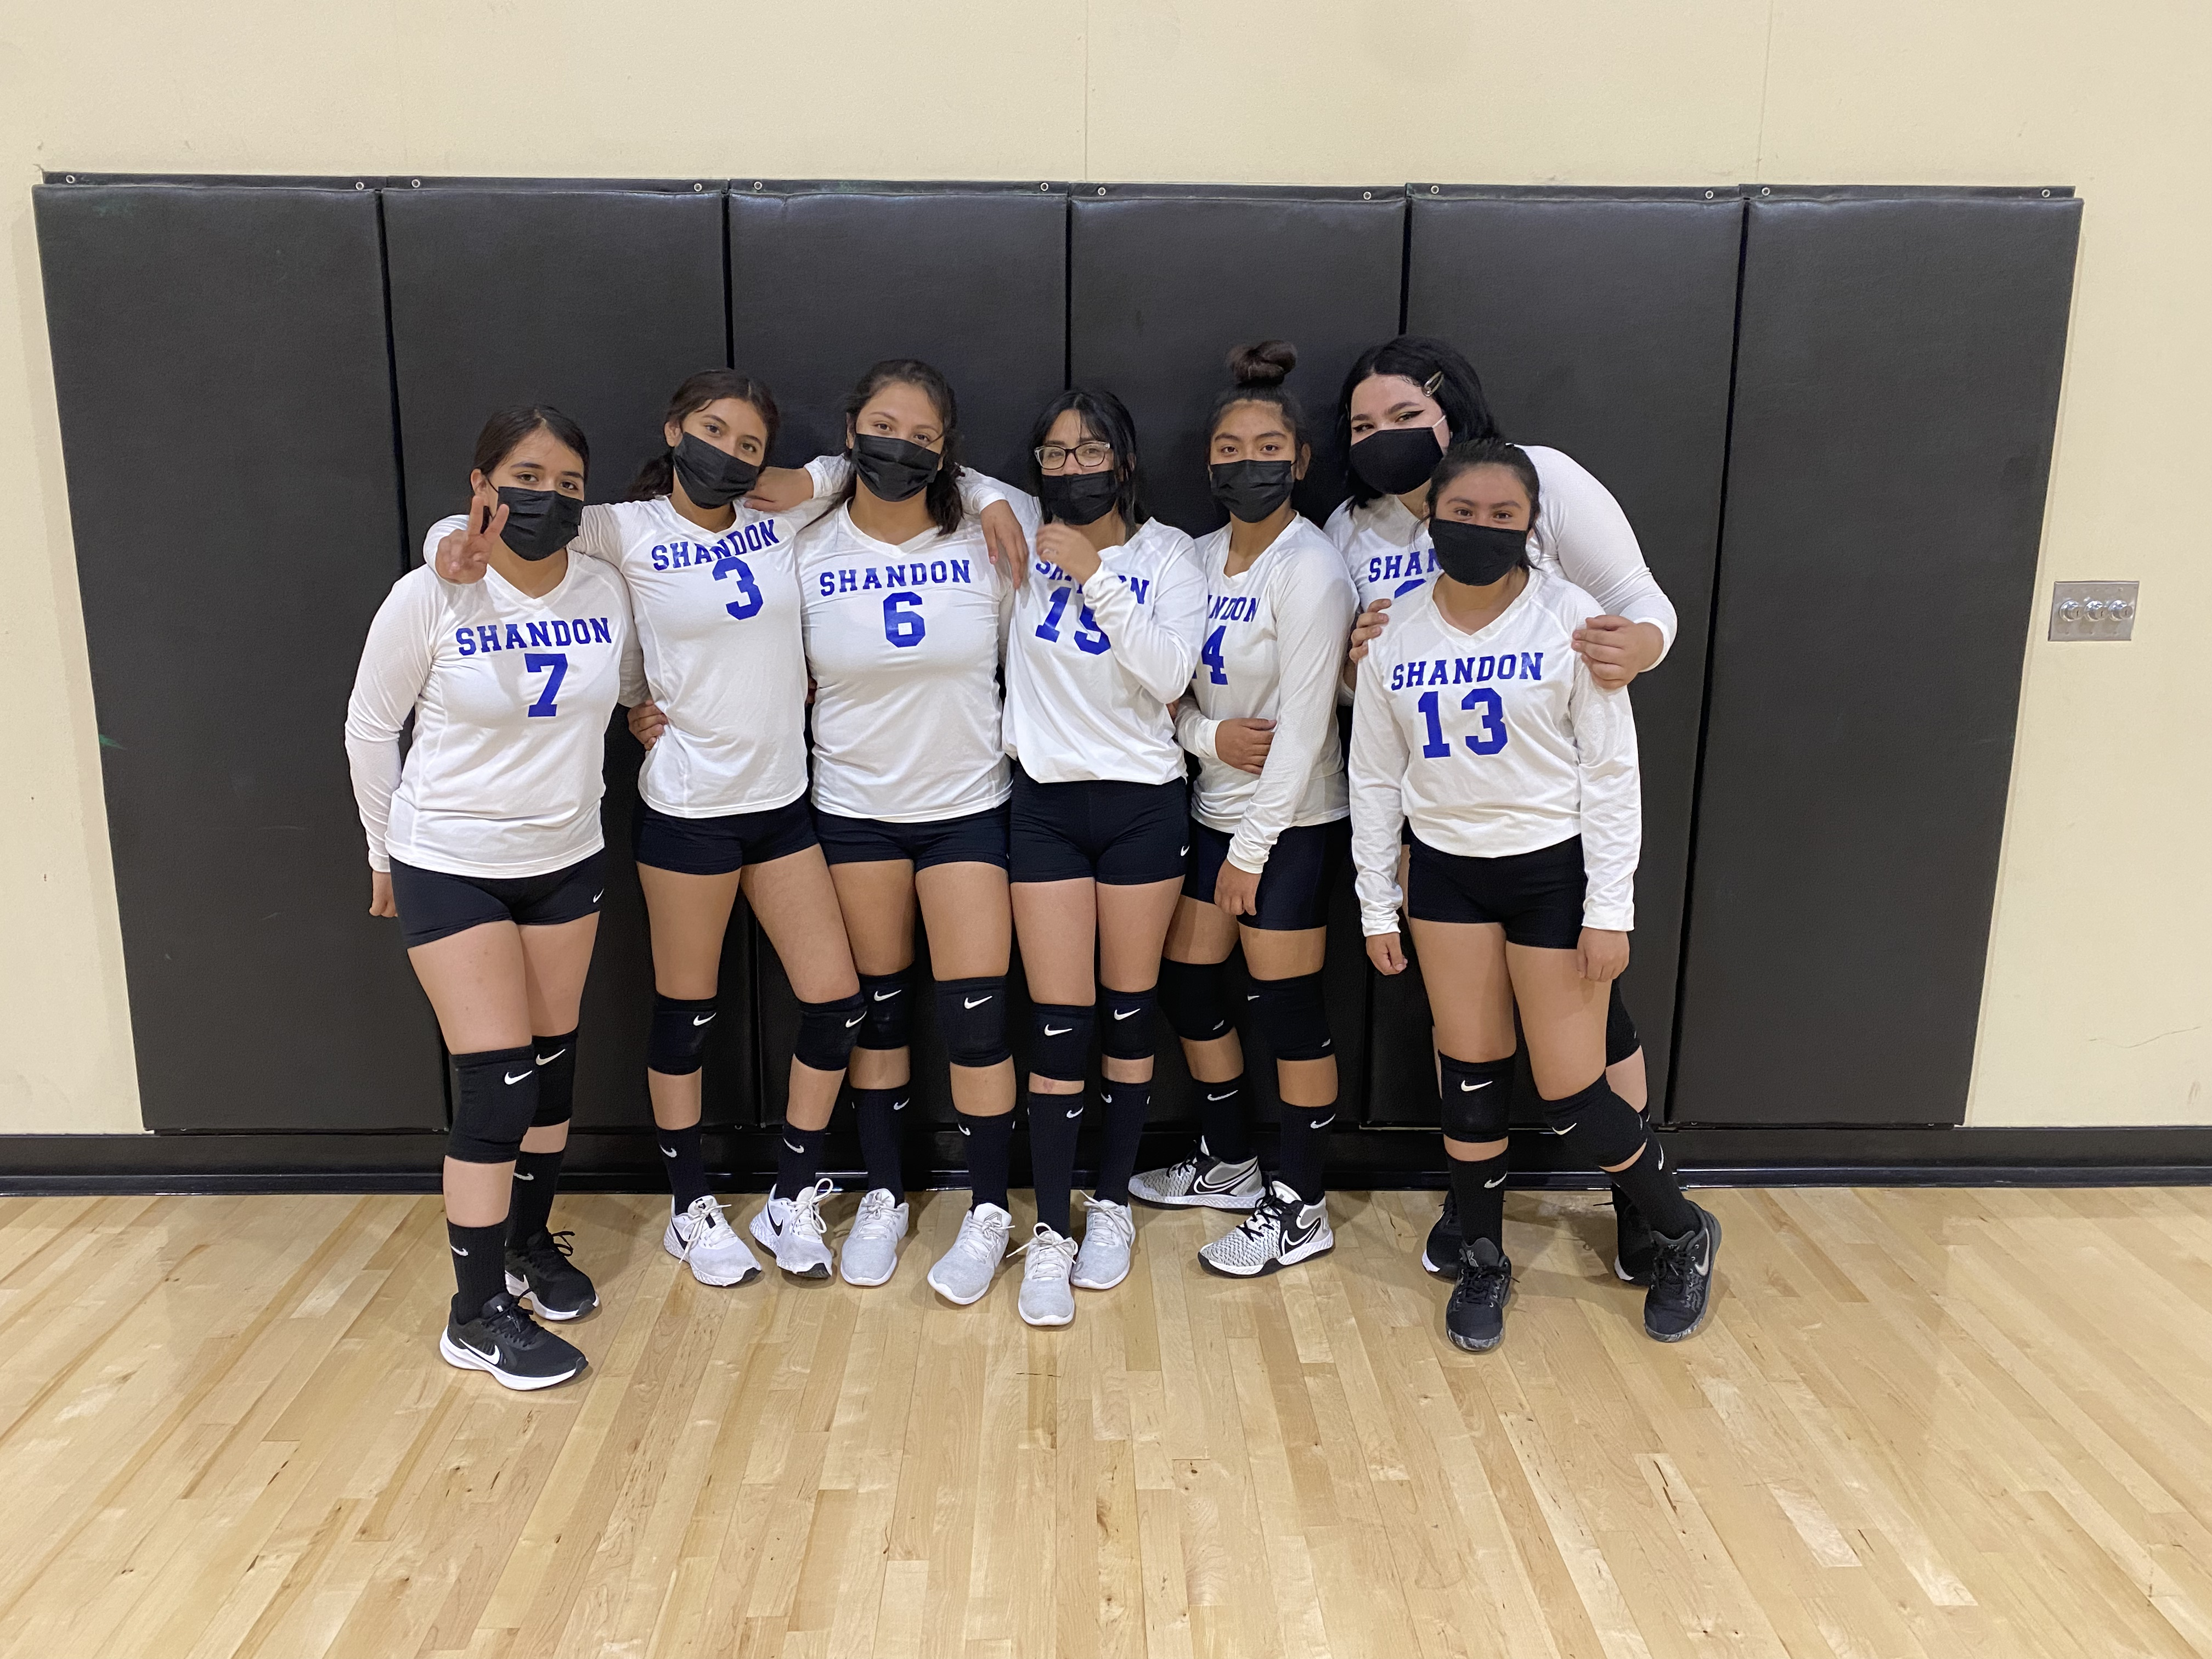 Shandon High School Junior Varsity volleyball team. Thank you for your hard work this season! We can't wait to see your progress next season! Go Outlaws!